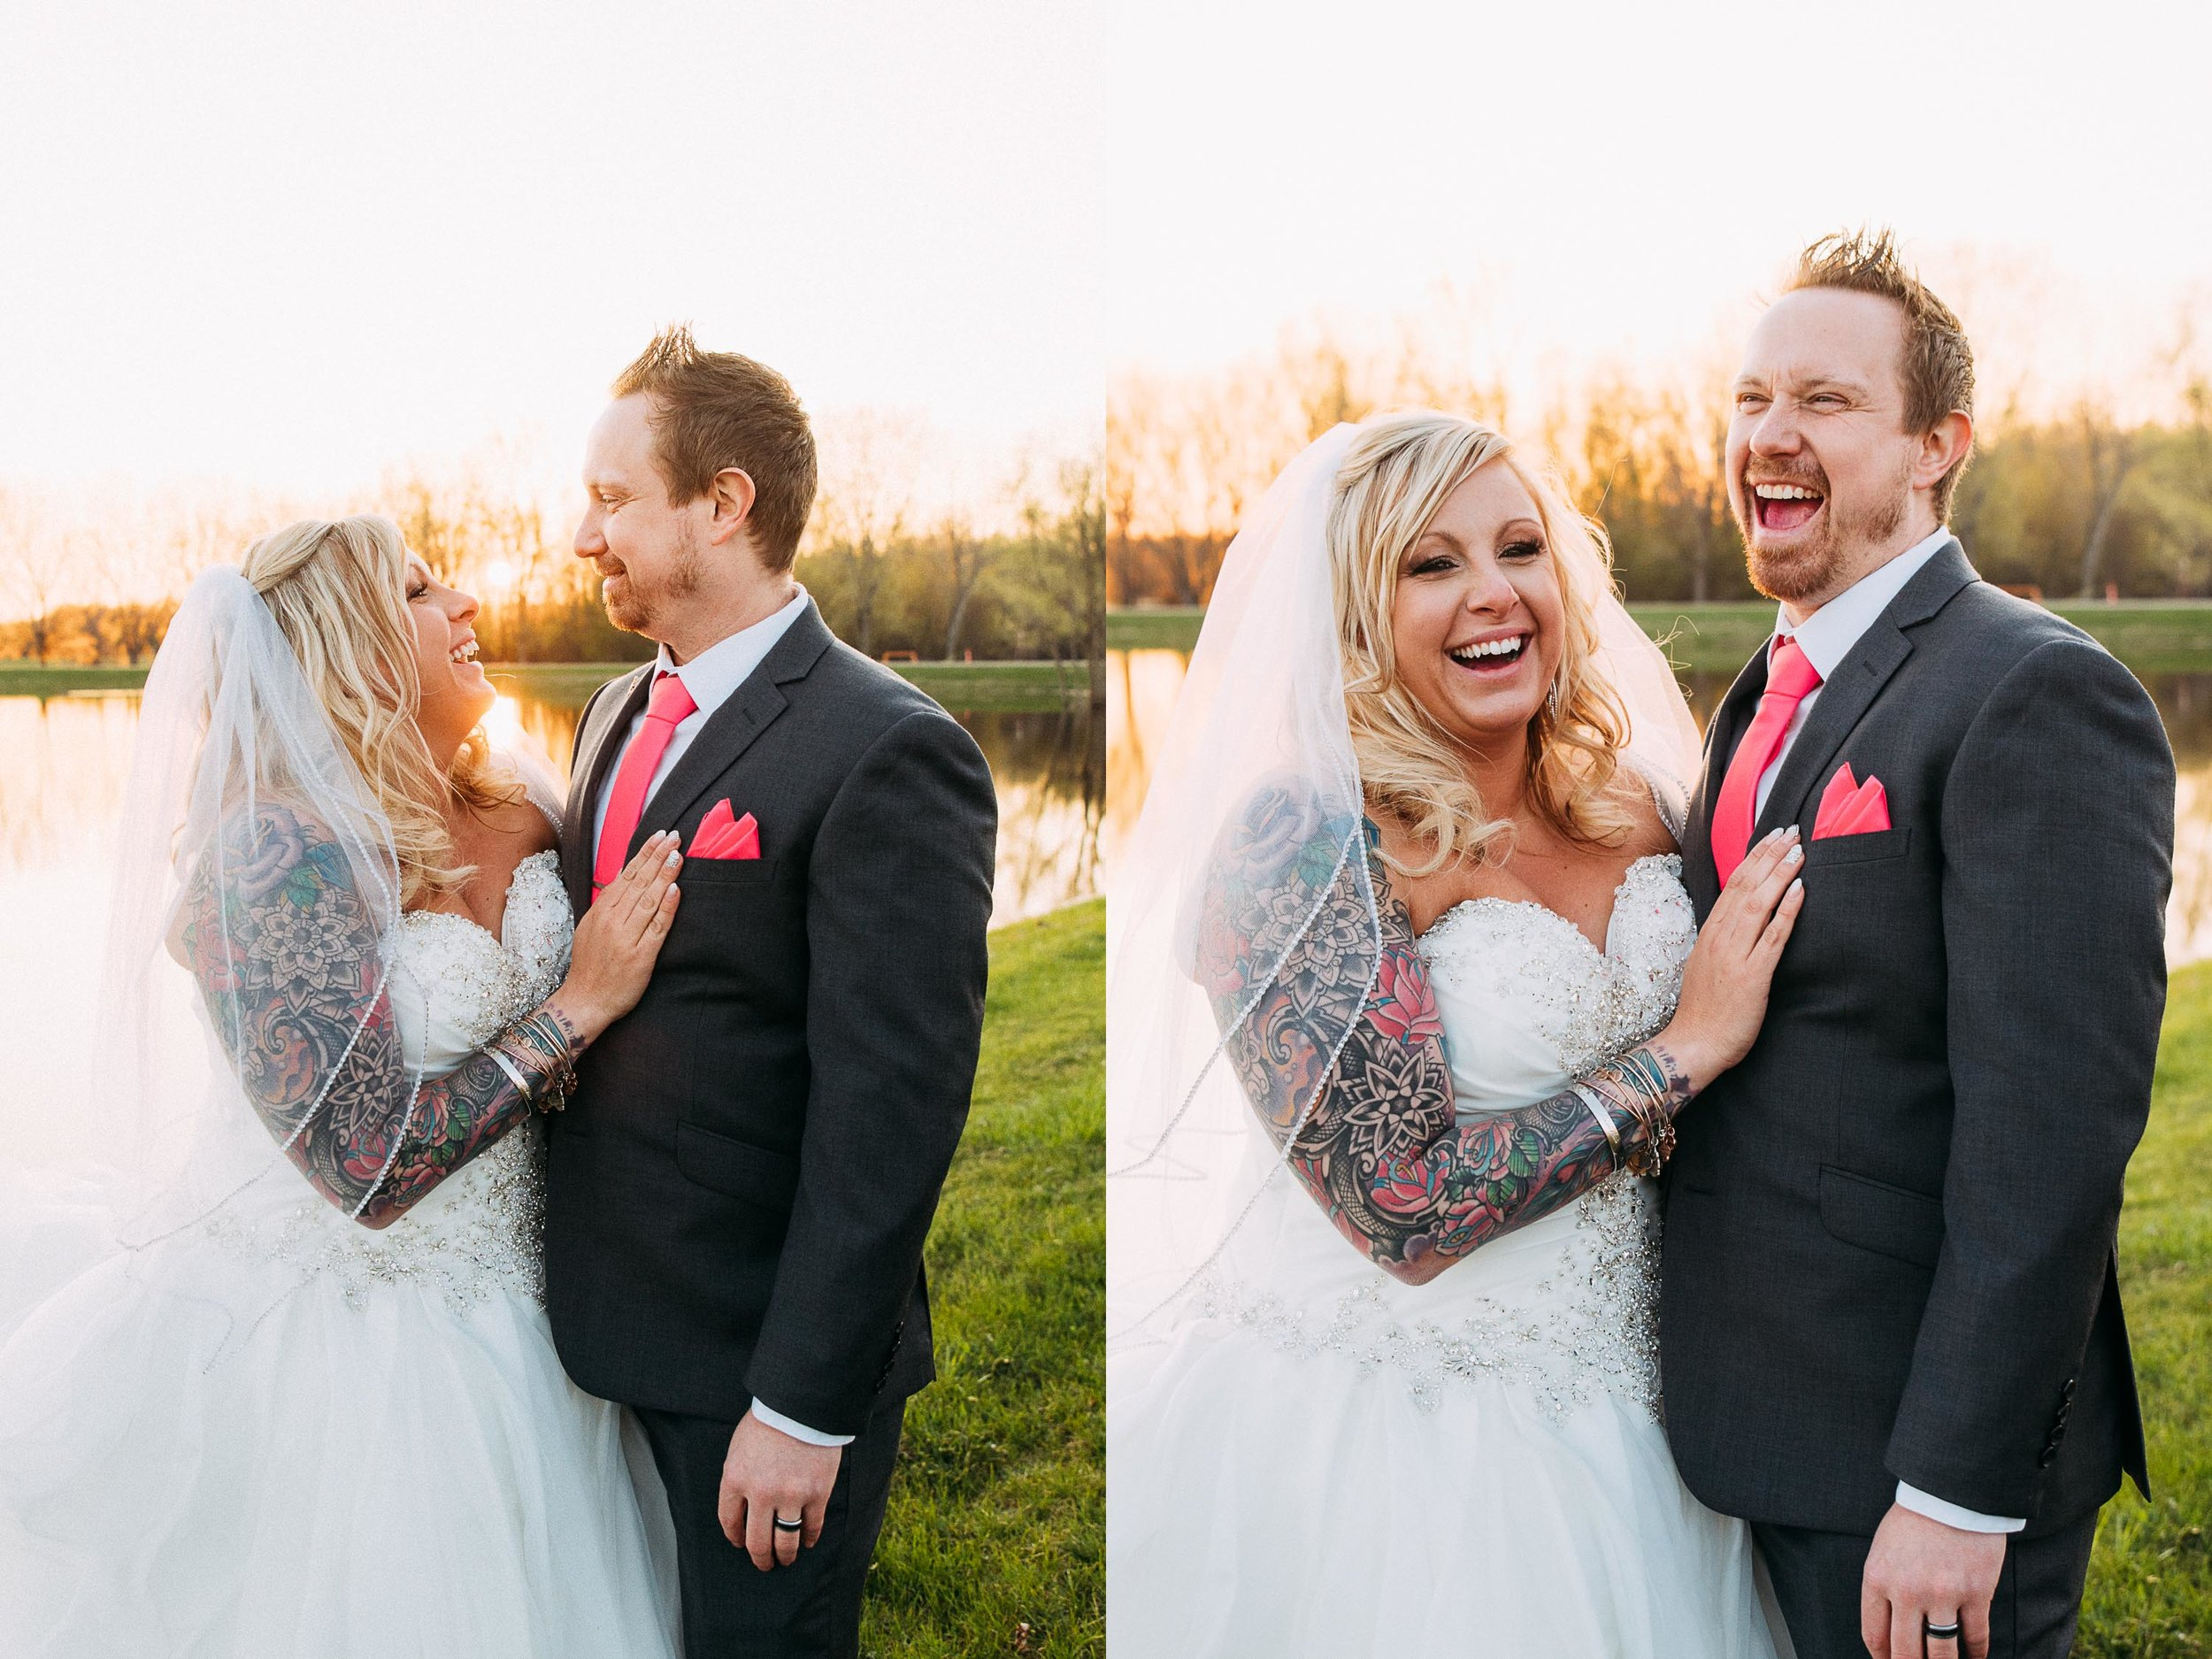 32-Minneapolis_Wedding_Photographer_Trevor_and_Elisebeth.jpg